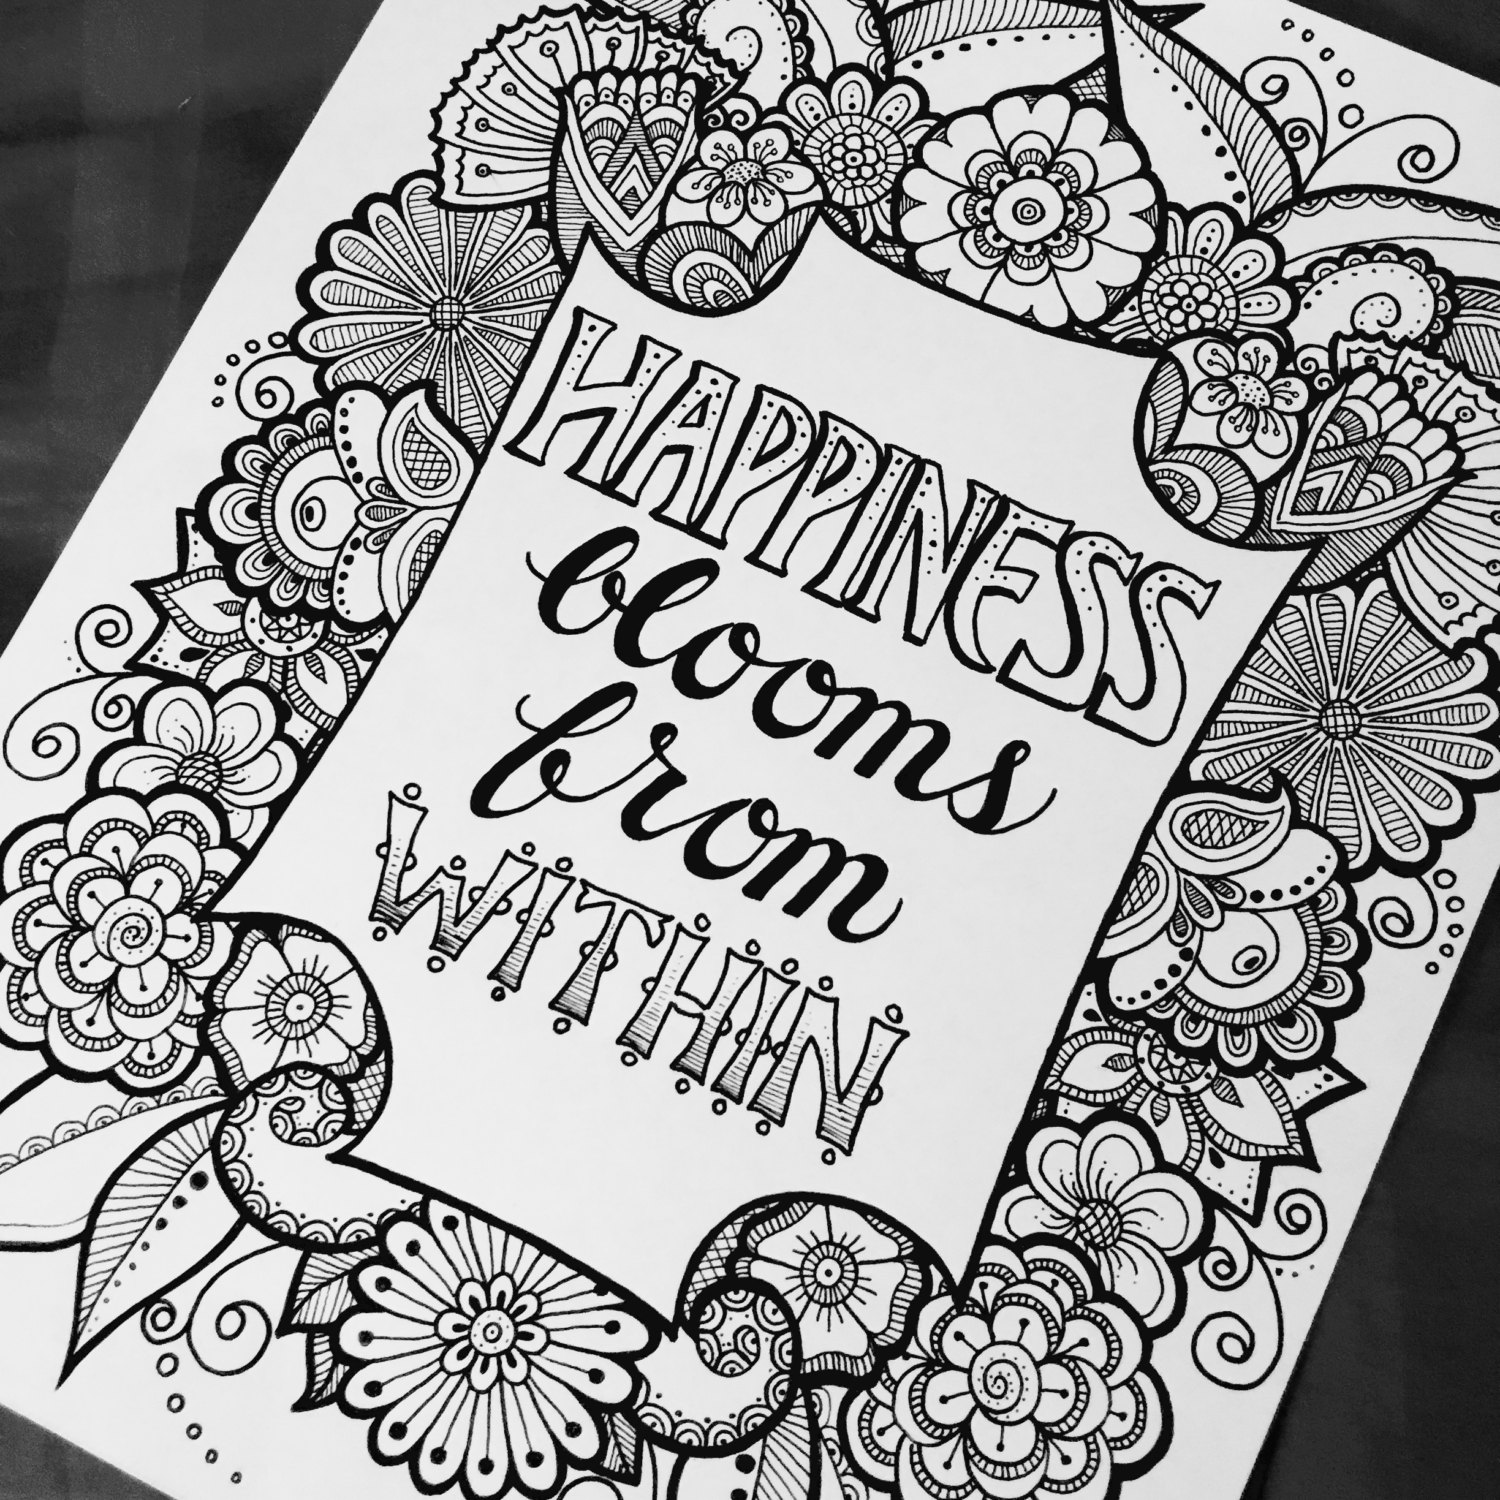 Digital Coloring Page Happiness Blooms From Quotes From The Etsy